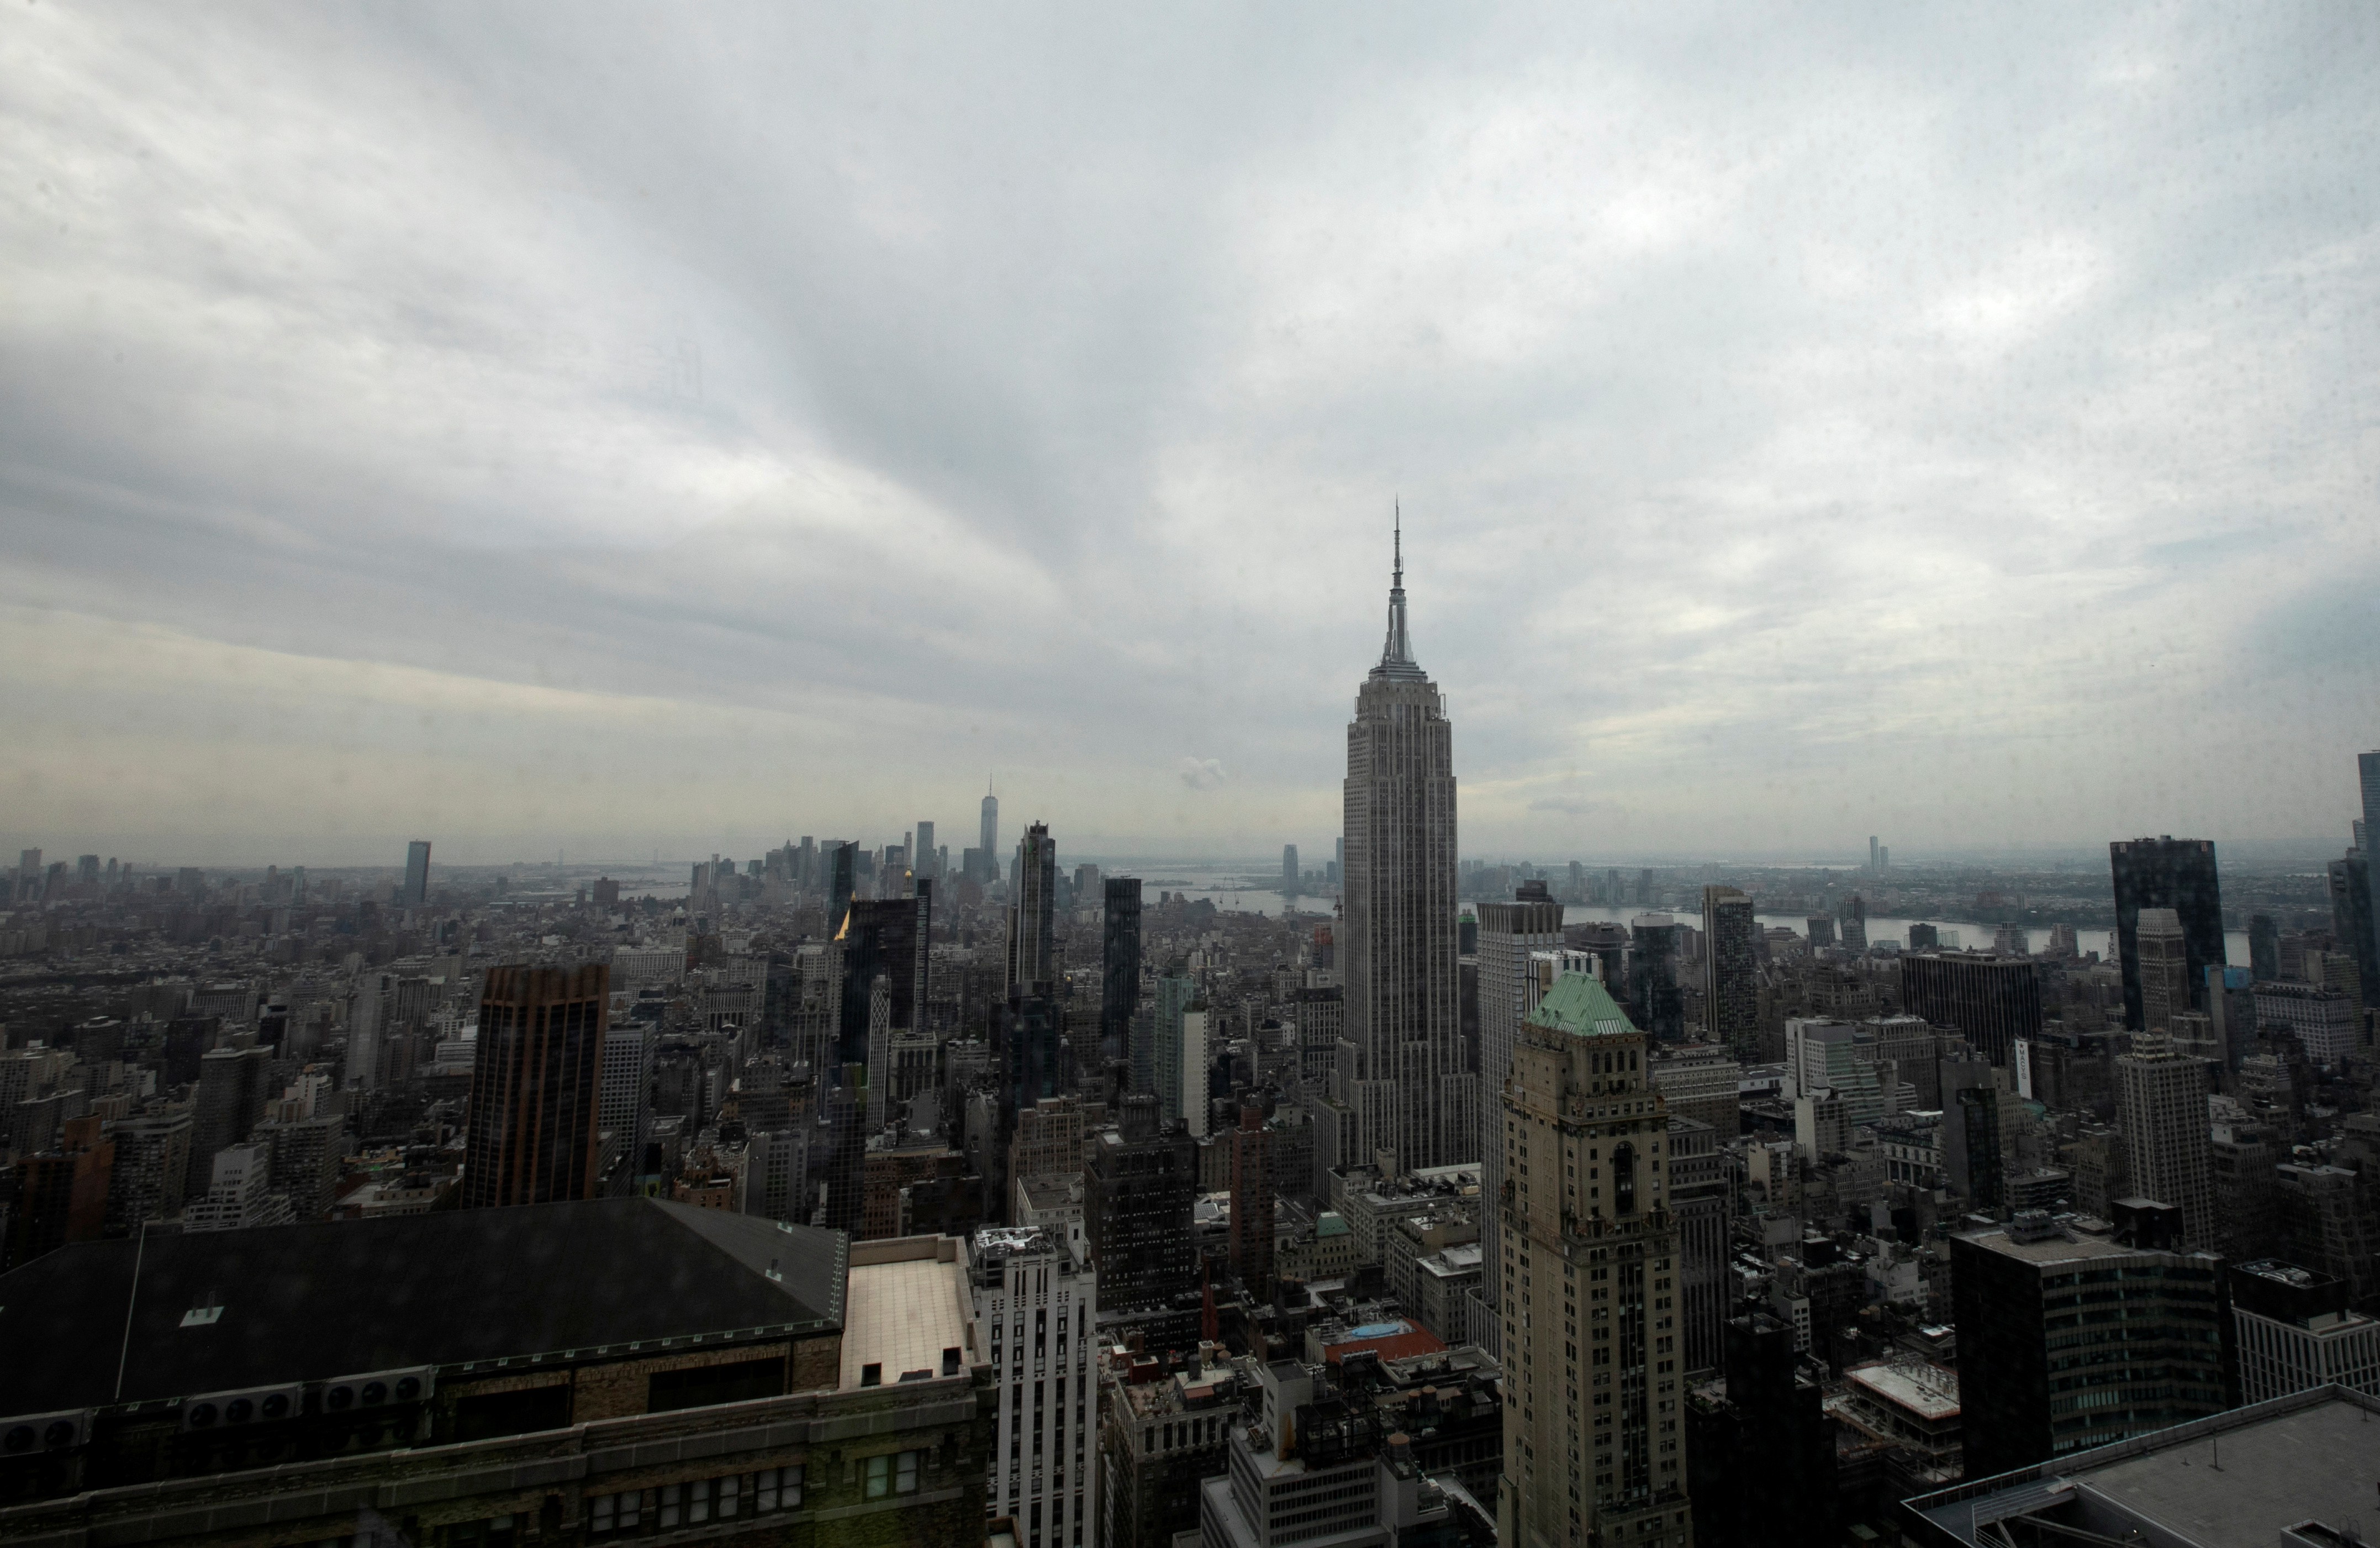 The Empire State Building and Manhattan skyline is seen from the 77 story One Vanderbilt office tower, th. Picture taken September 9, 2020. REUTERS/Mike Segar